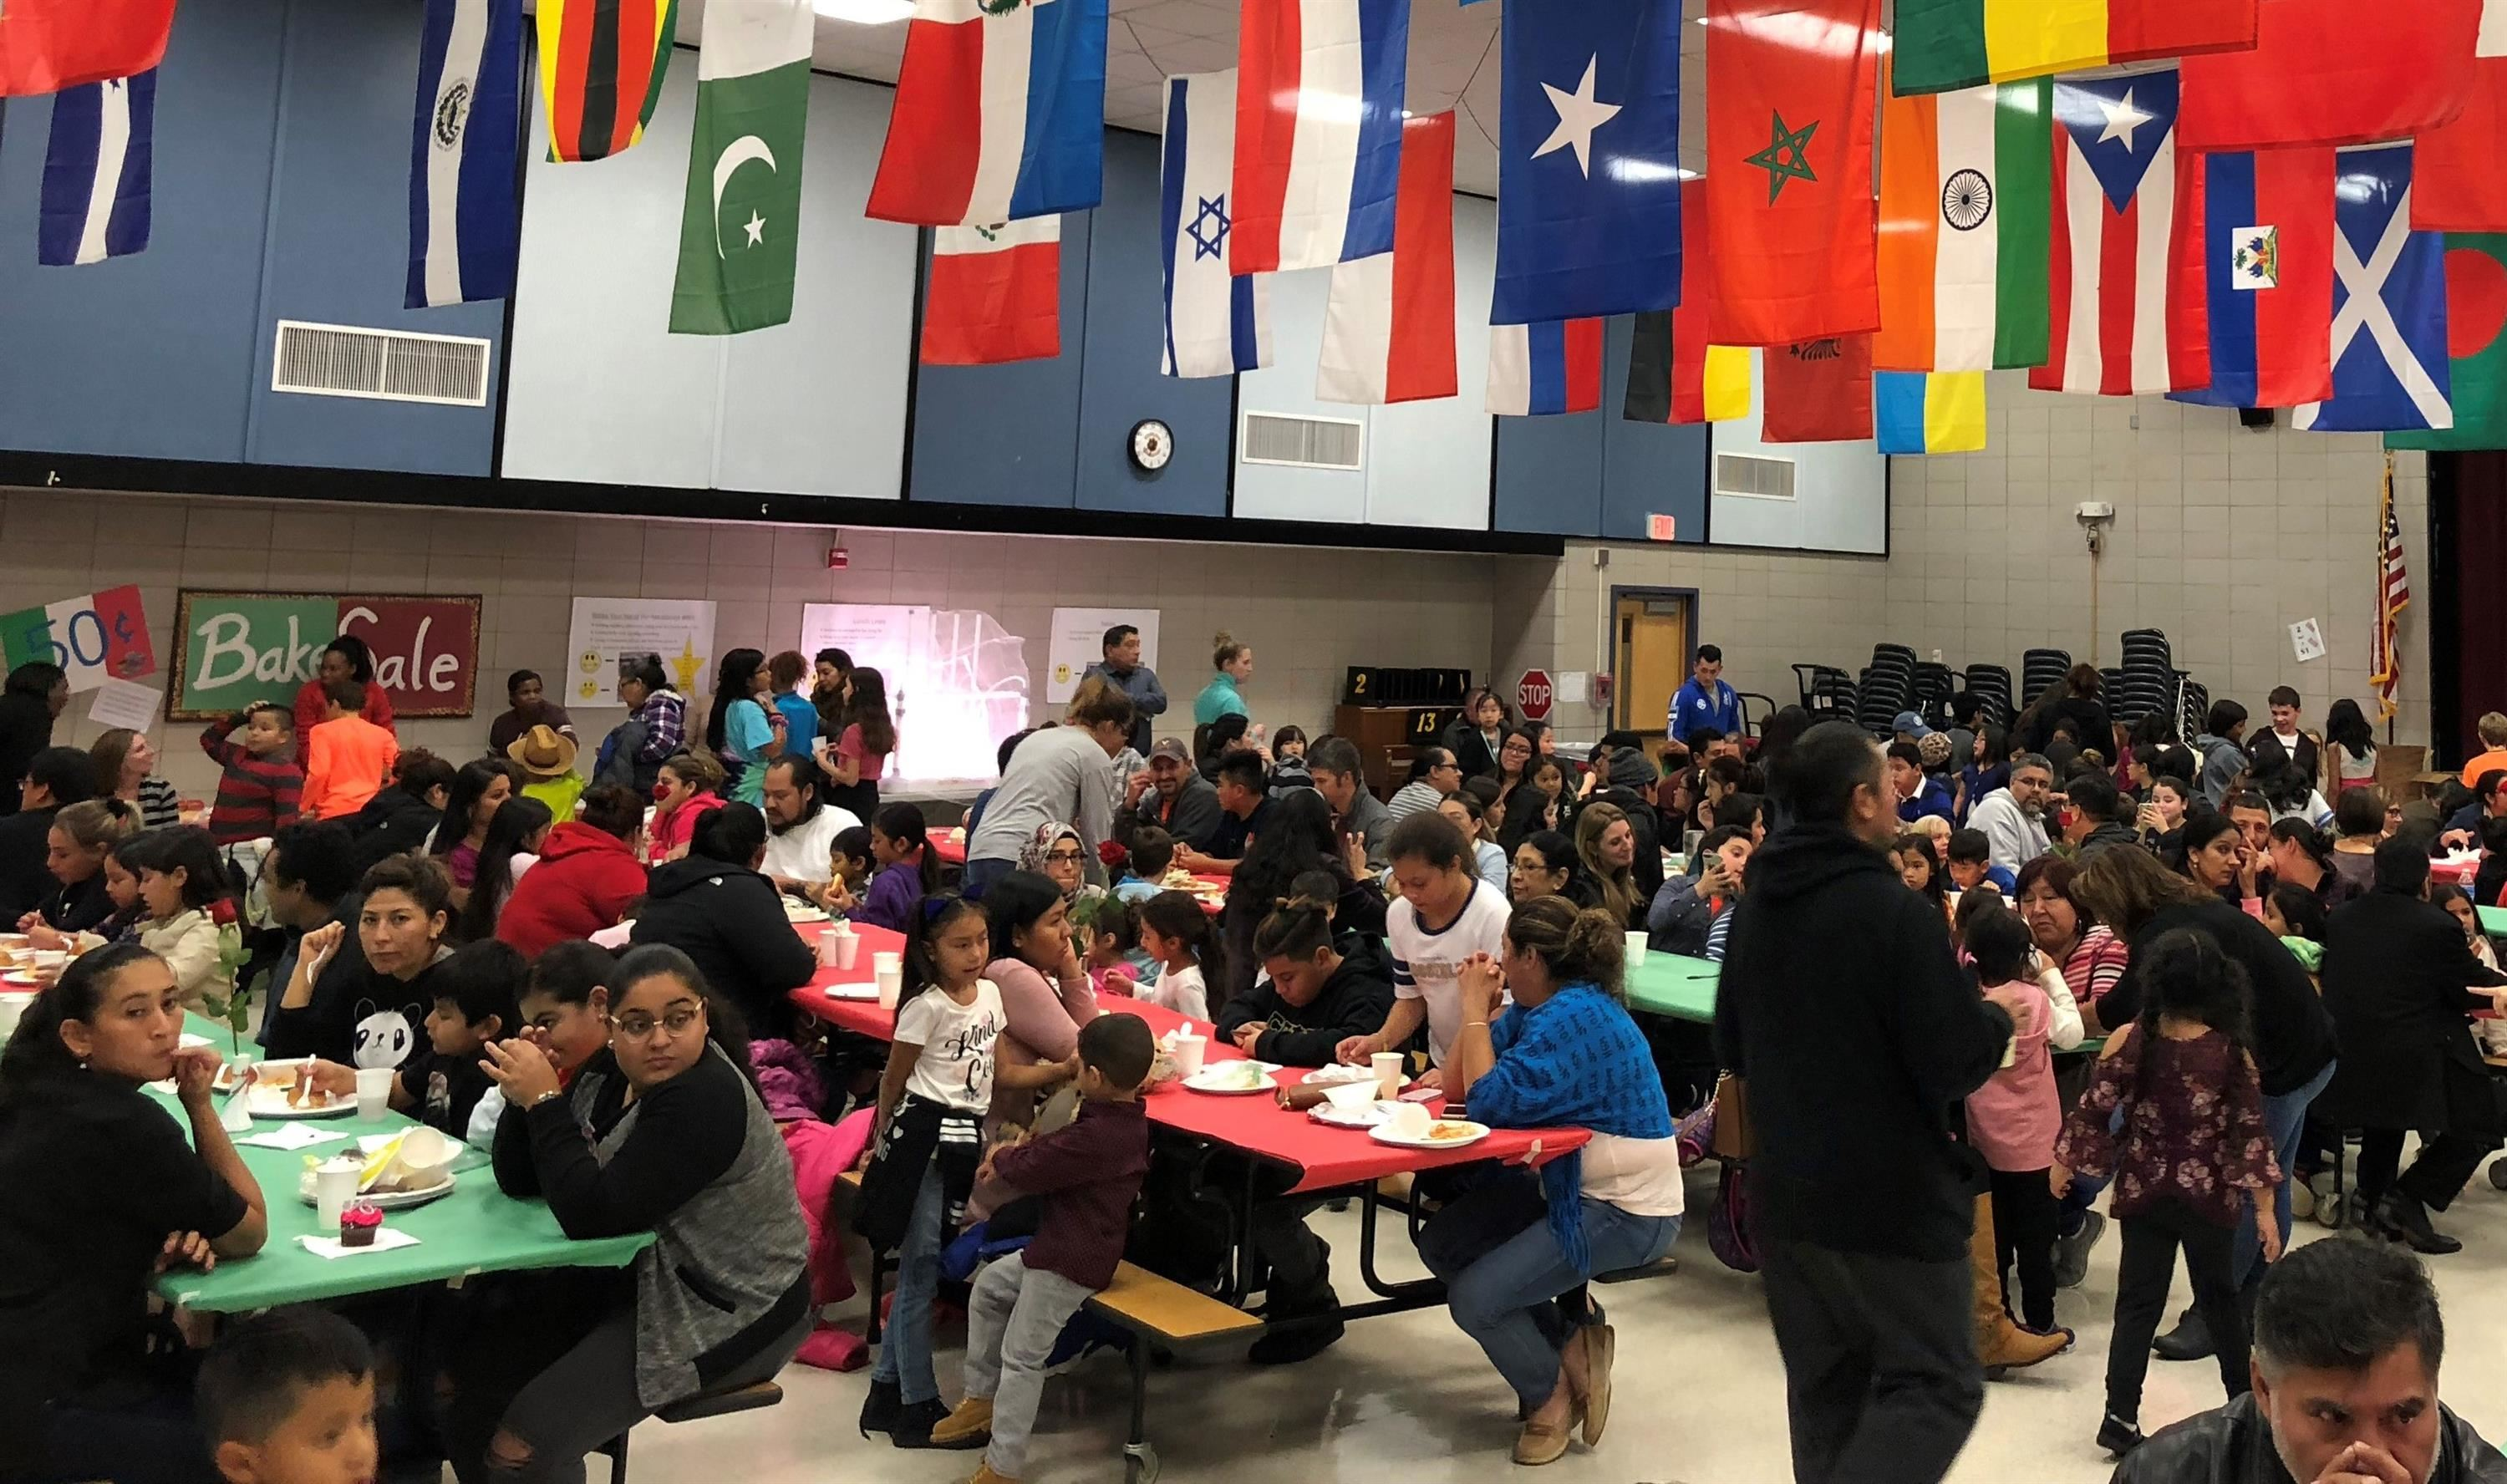 Lots of families came to enjoy the Spaghetti Dinner